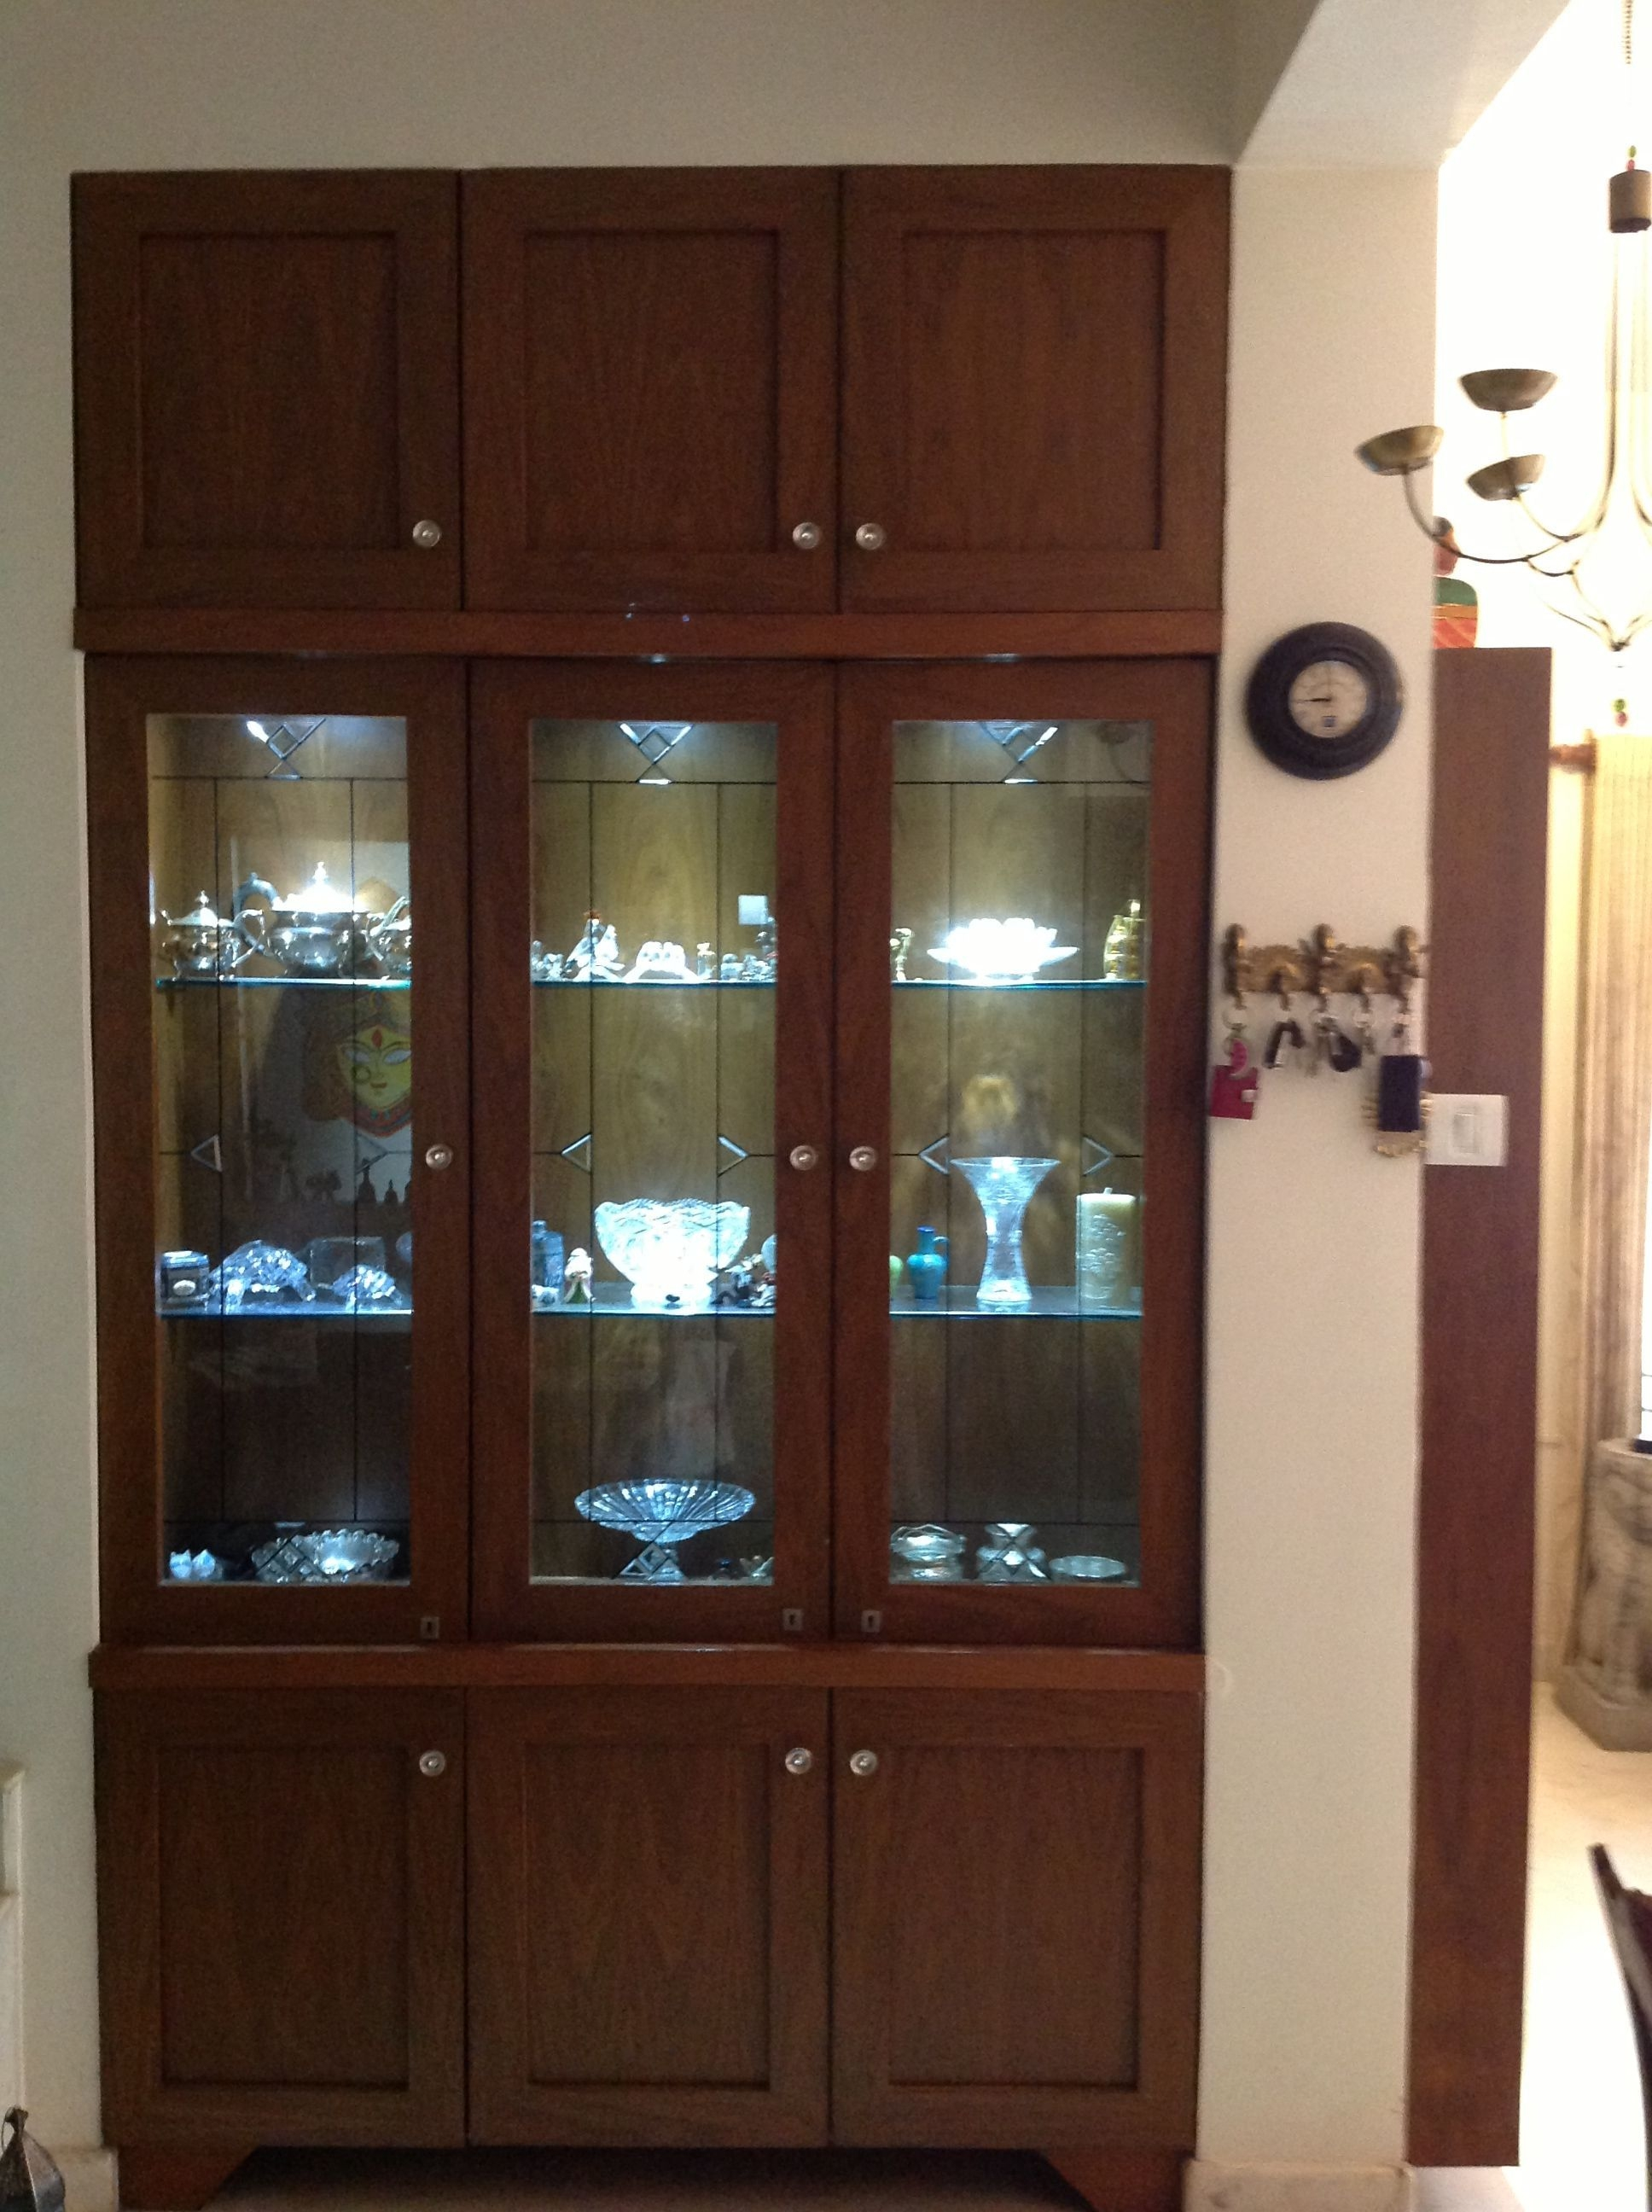 Crockery Unit Made To Order In A Niche That Existed Along With Space To Display Curios  Indian